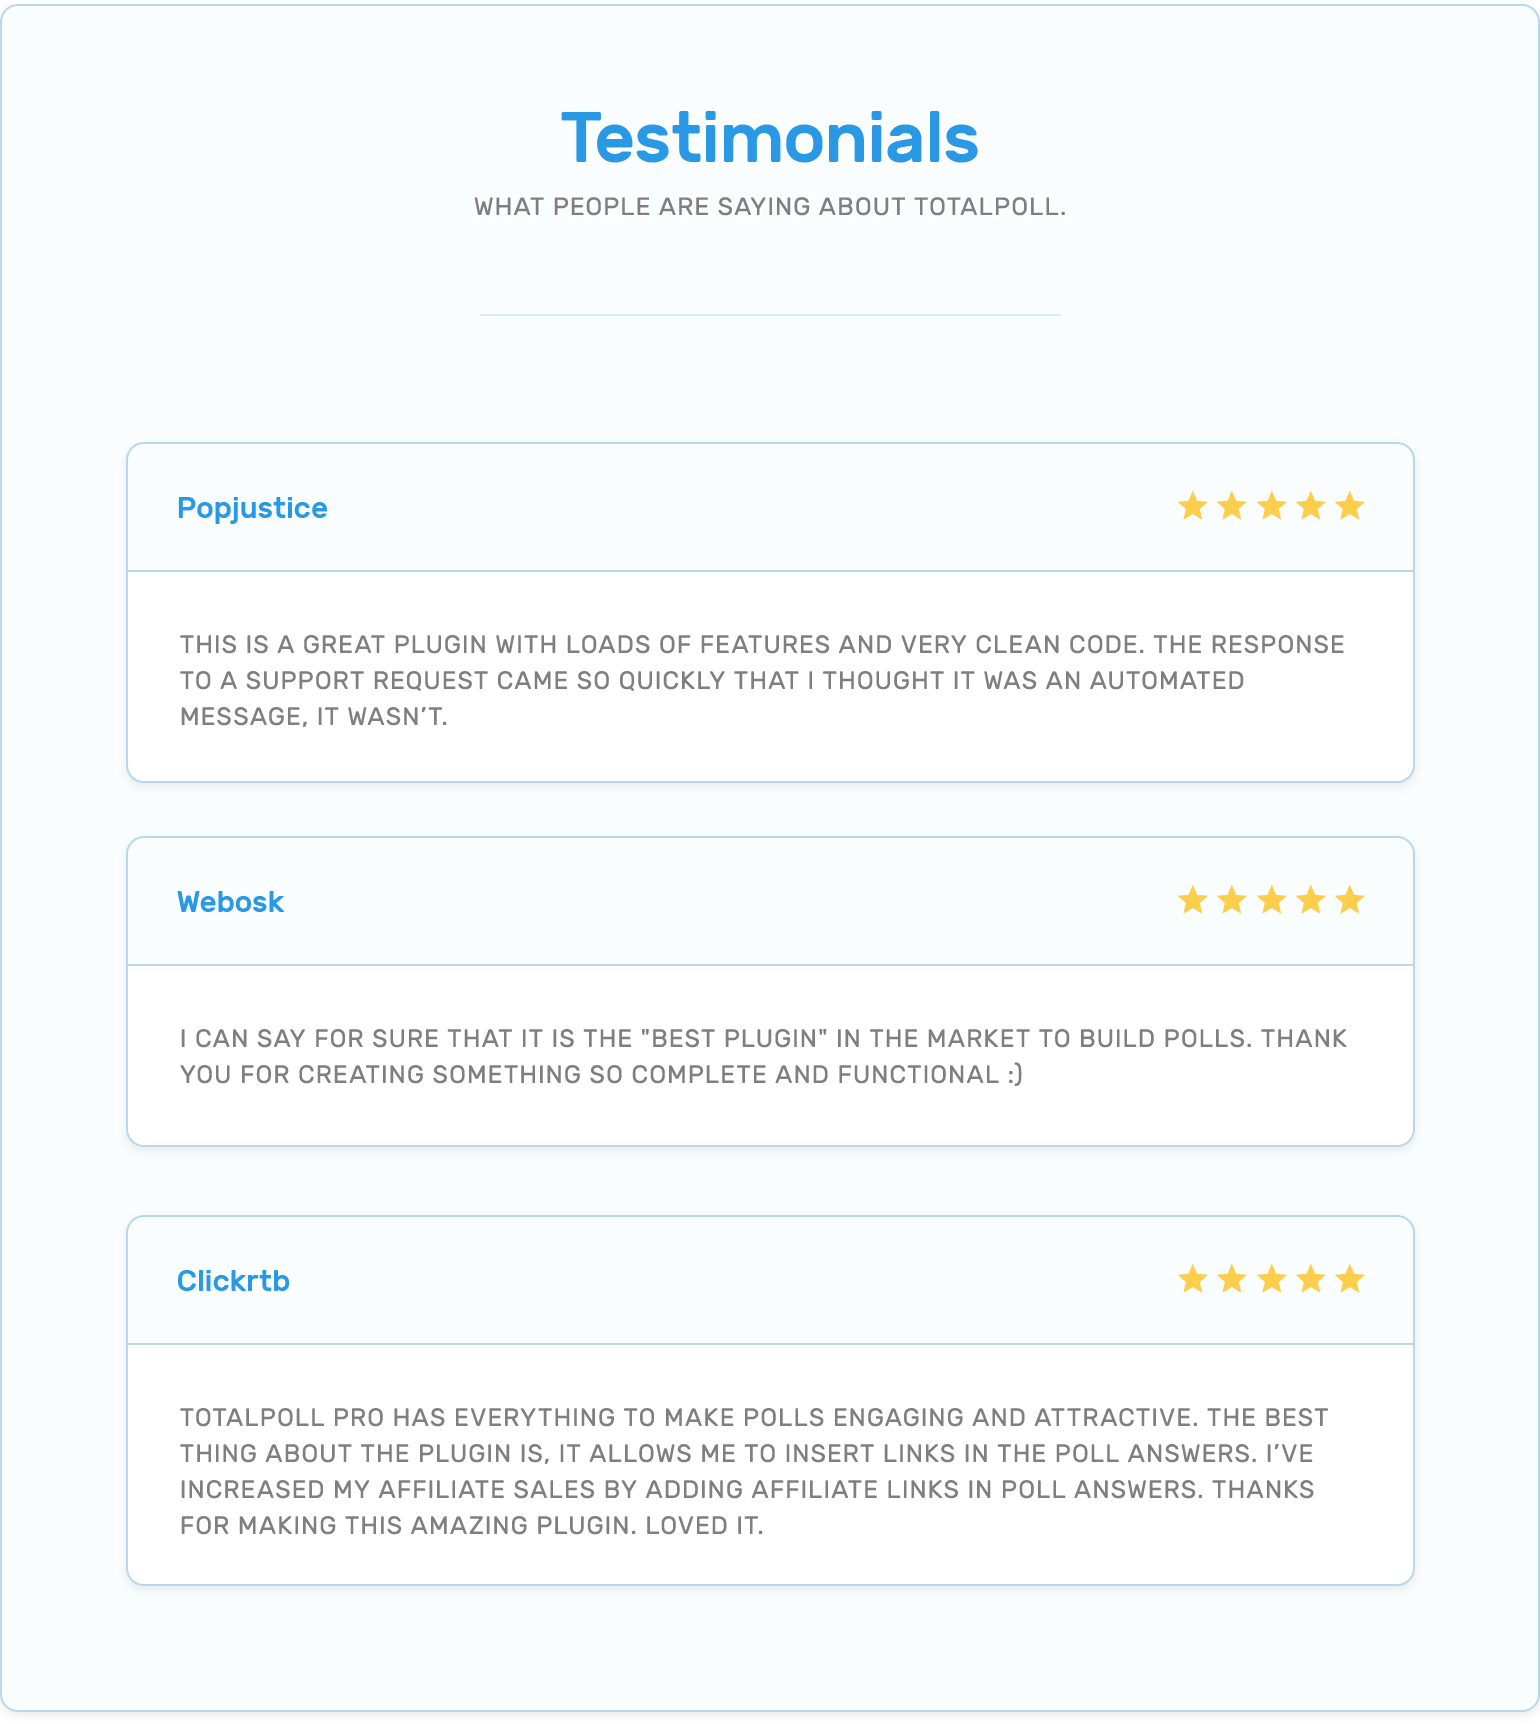 Testimonials of customers who used TotalPoll.